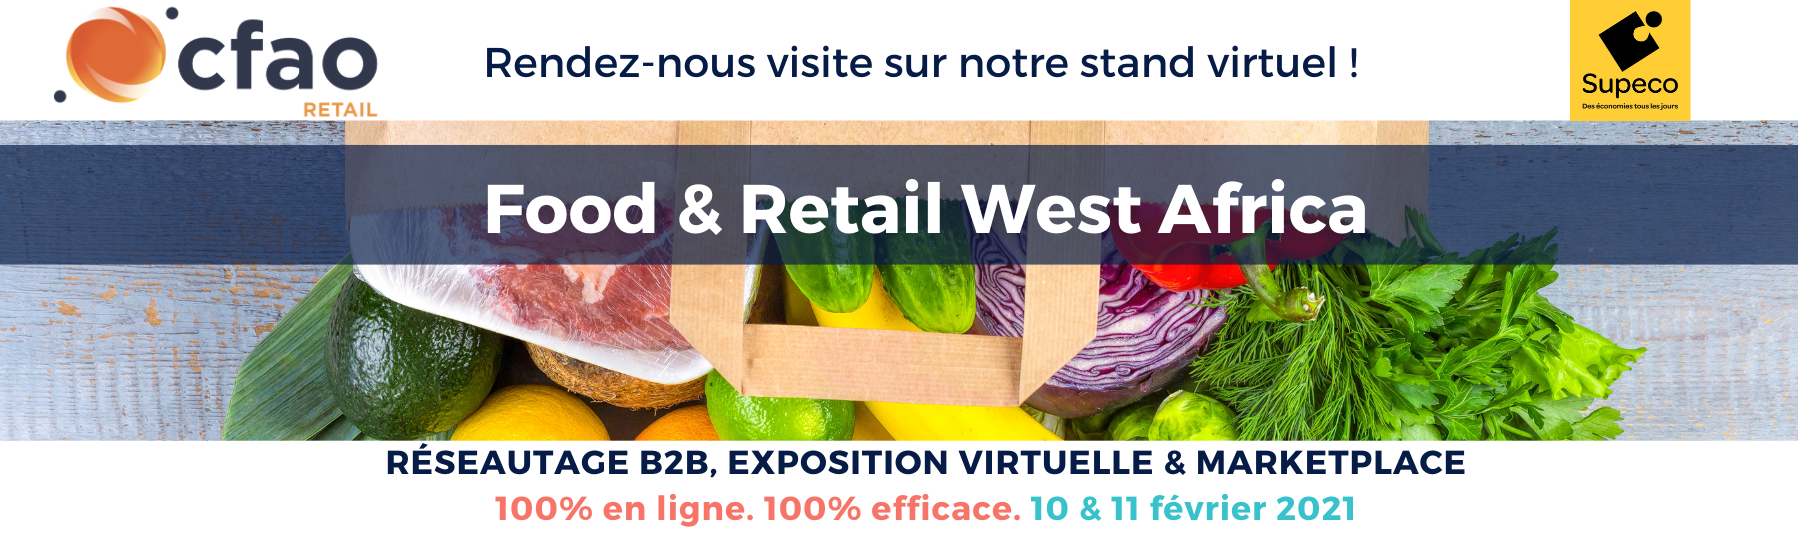 Supeco présent au salon Food & Retail West Africa